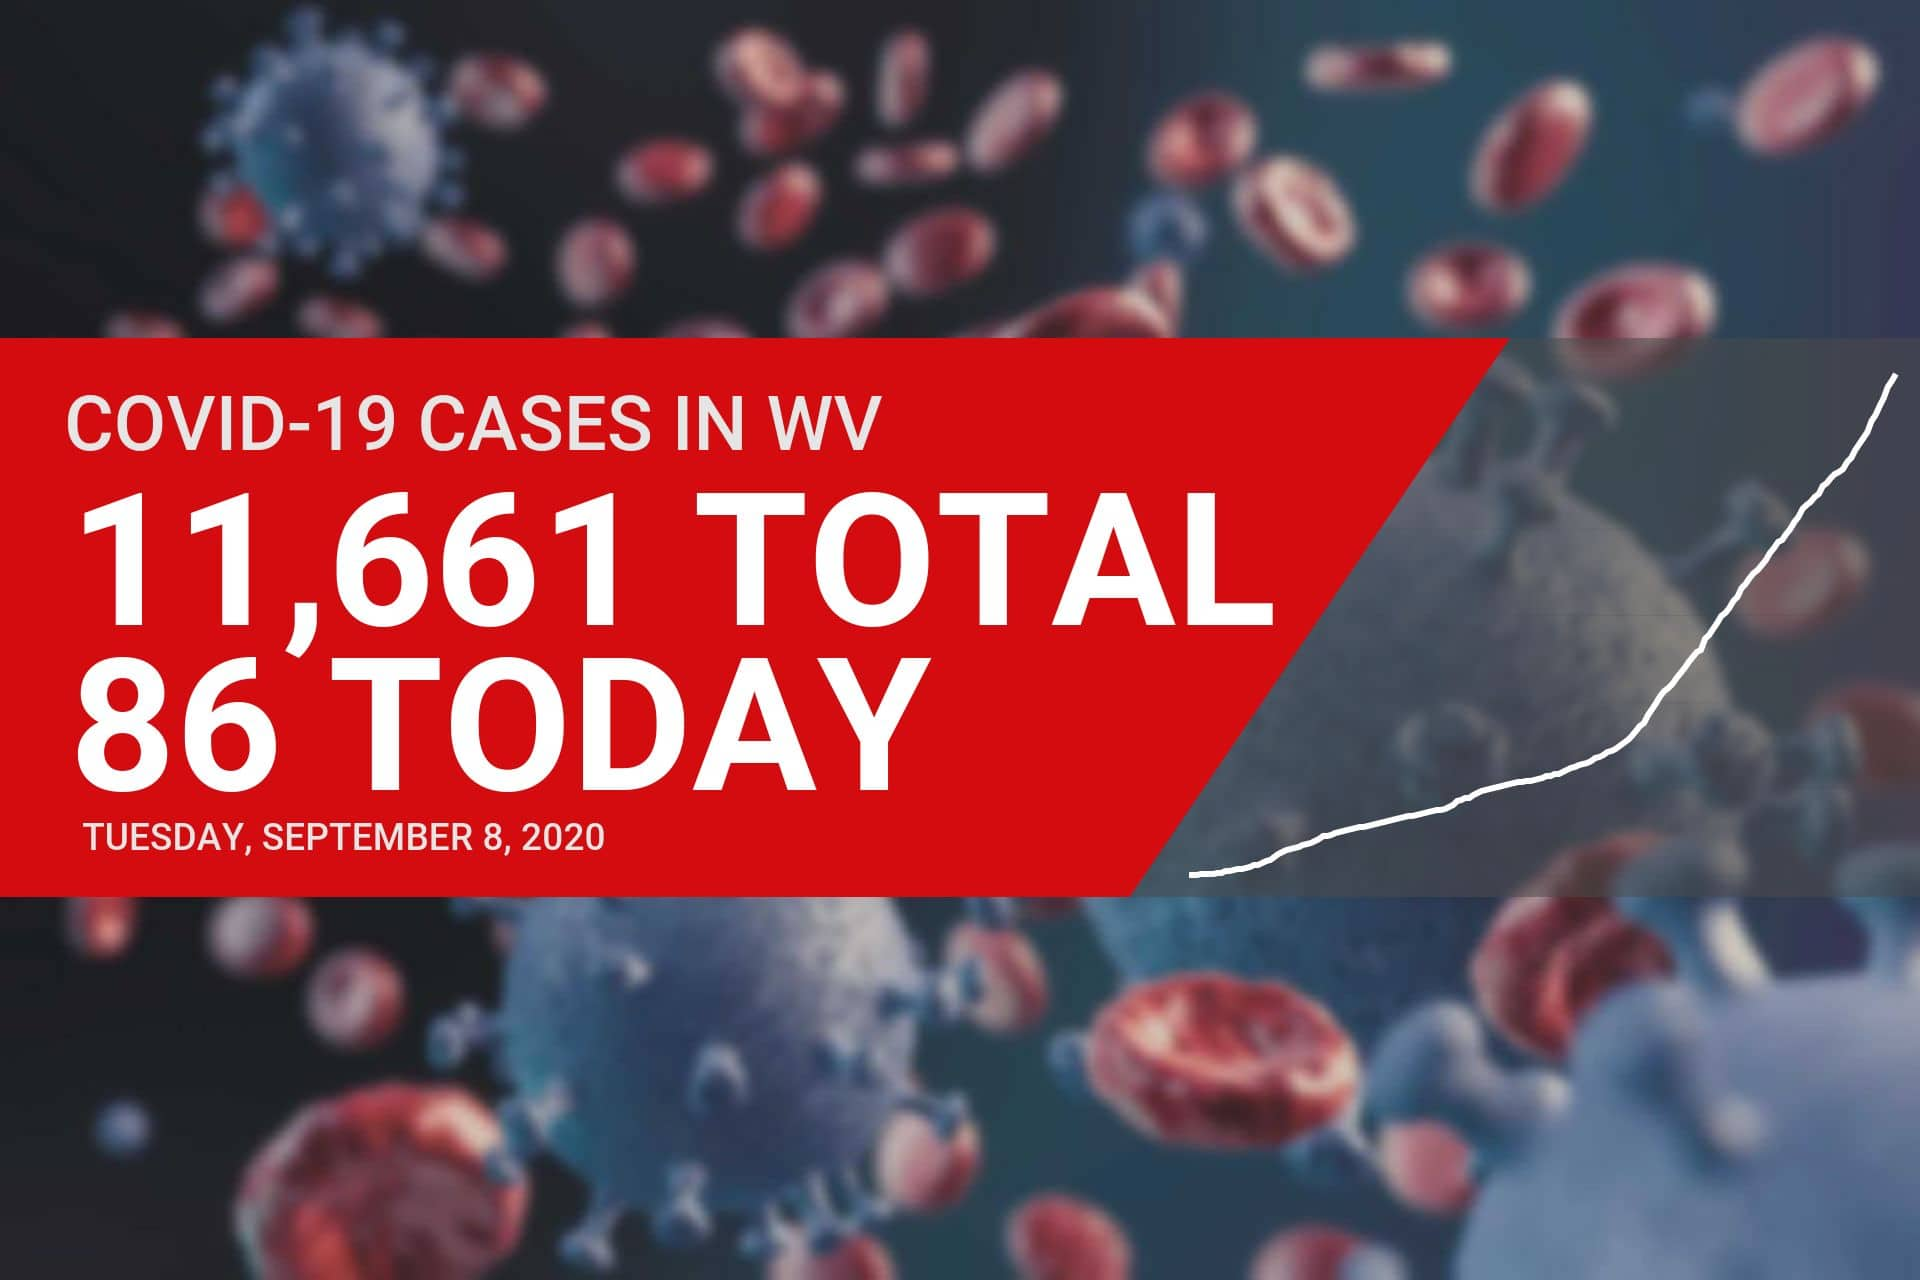 Four new COVID-19 cases reported as Upshur County turns yellow in Tuesday's DHHR update